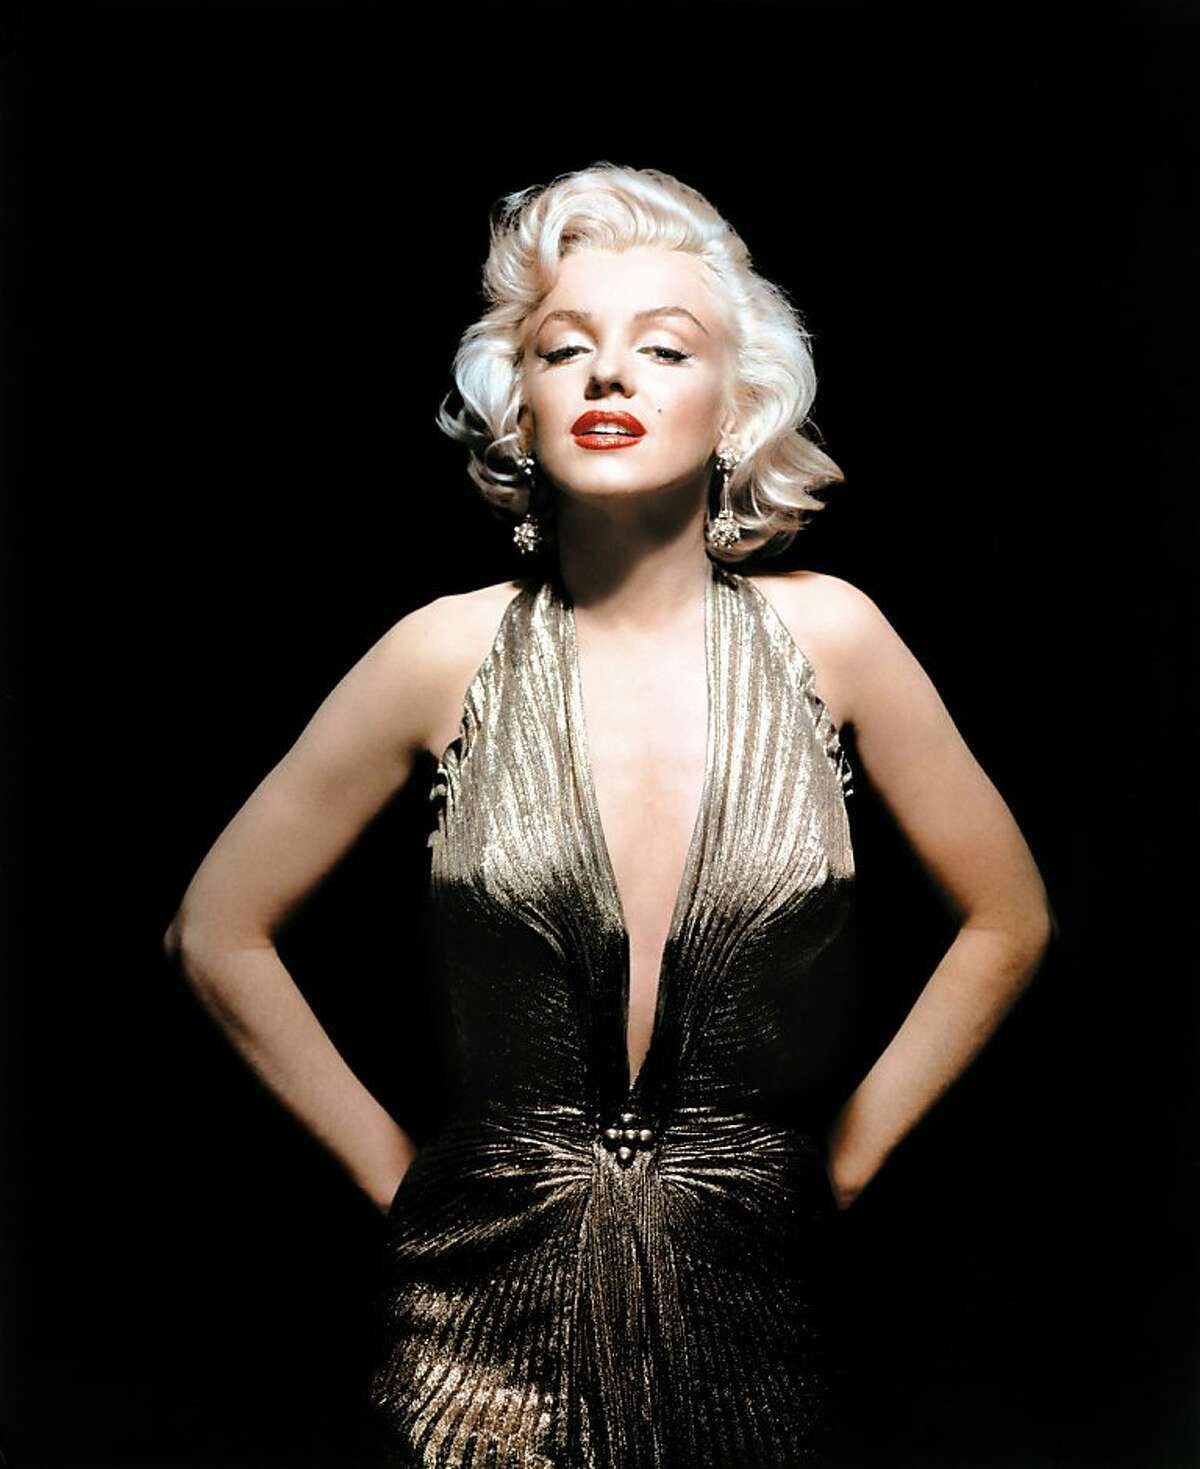 In this undated publicity photo courtesy Running Press, Marilyn Monroe is shown wearing a knife-pleated gold lamé gown made from